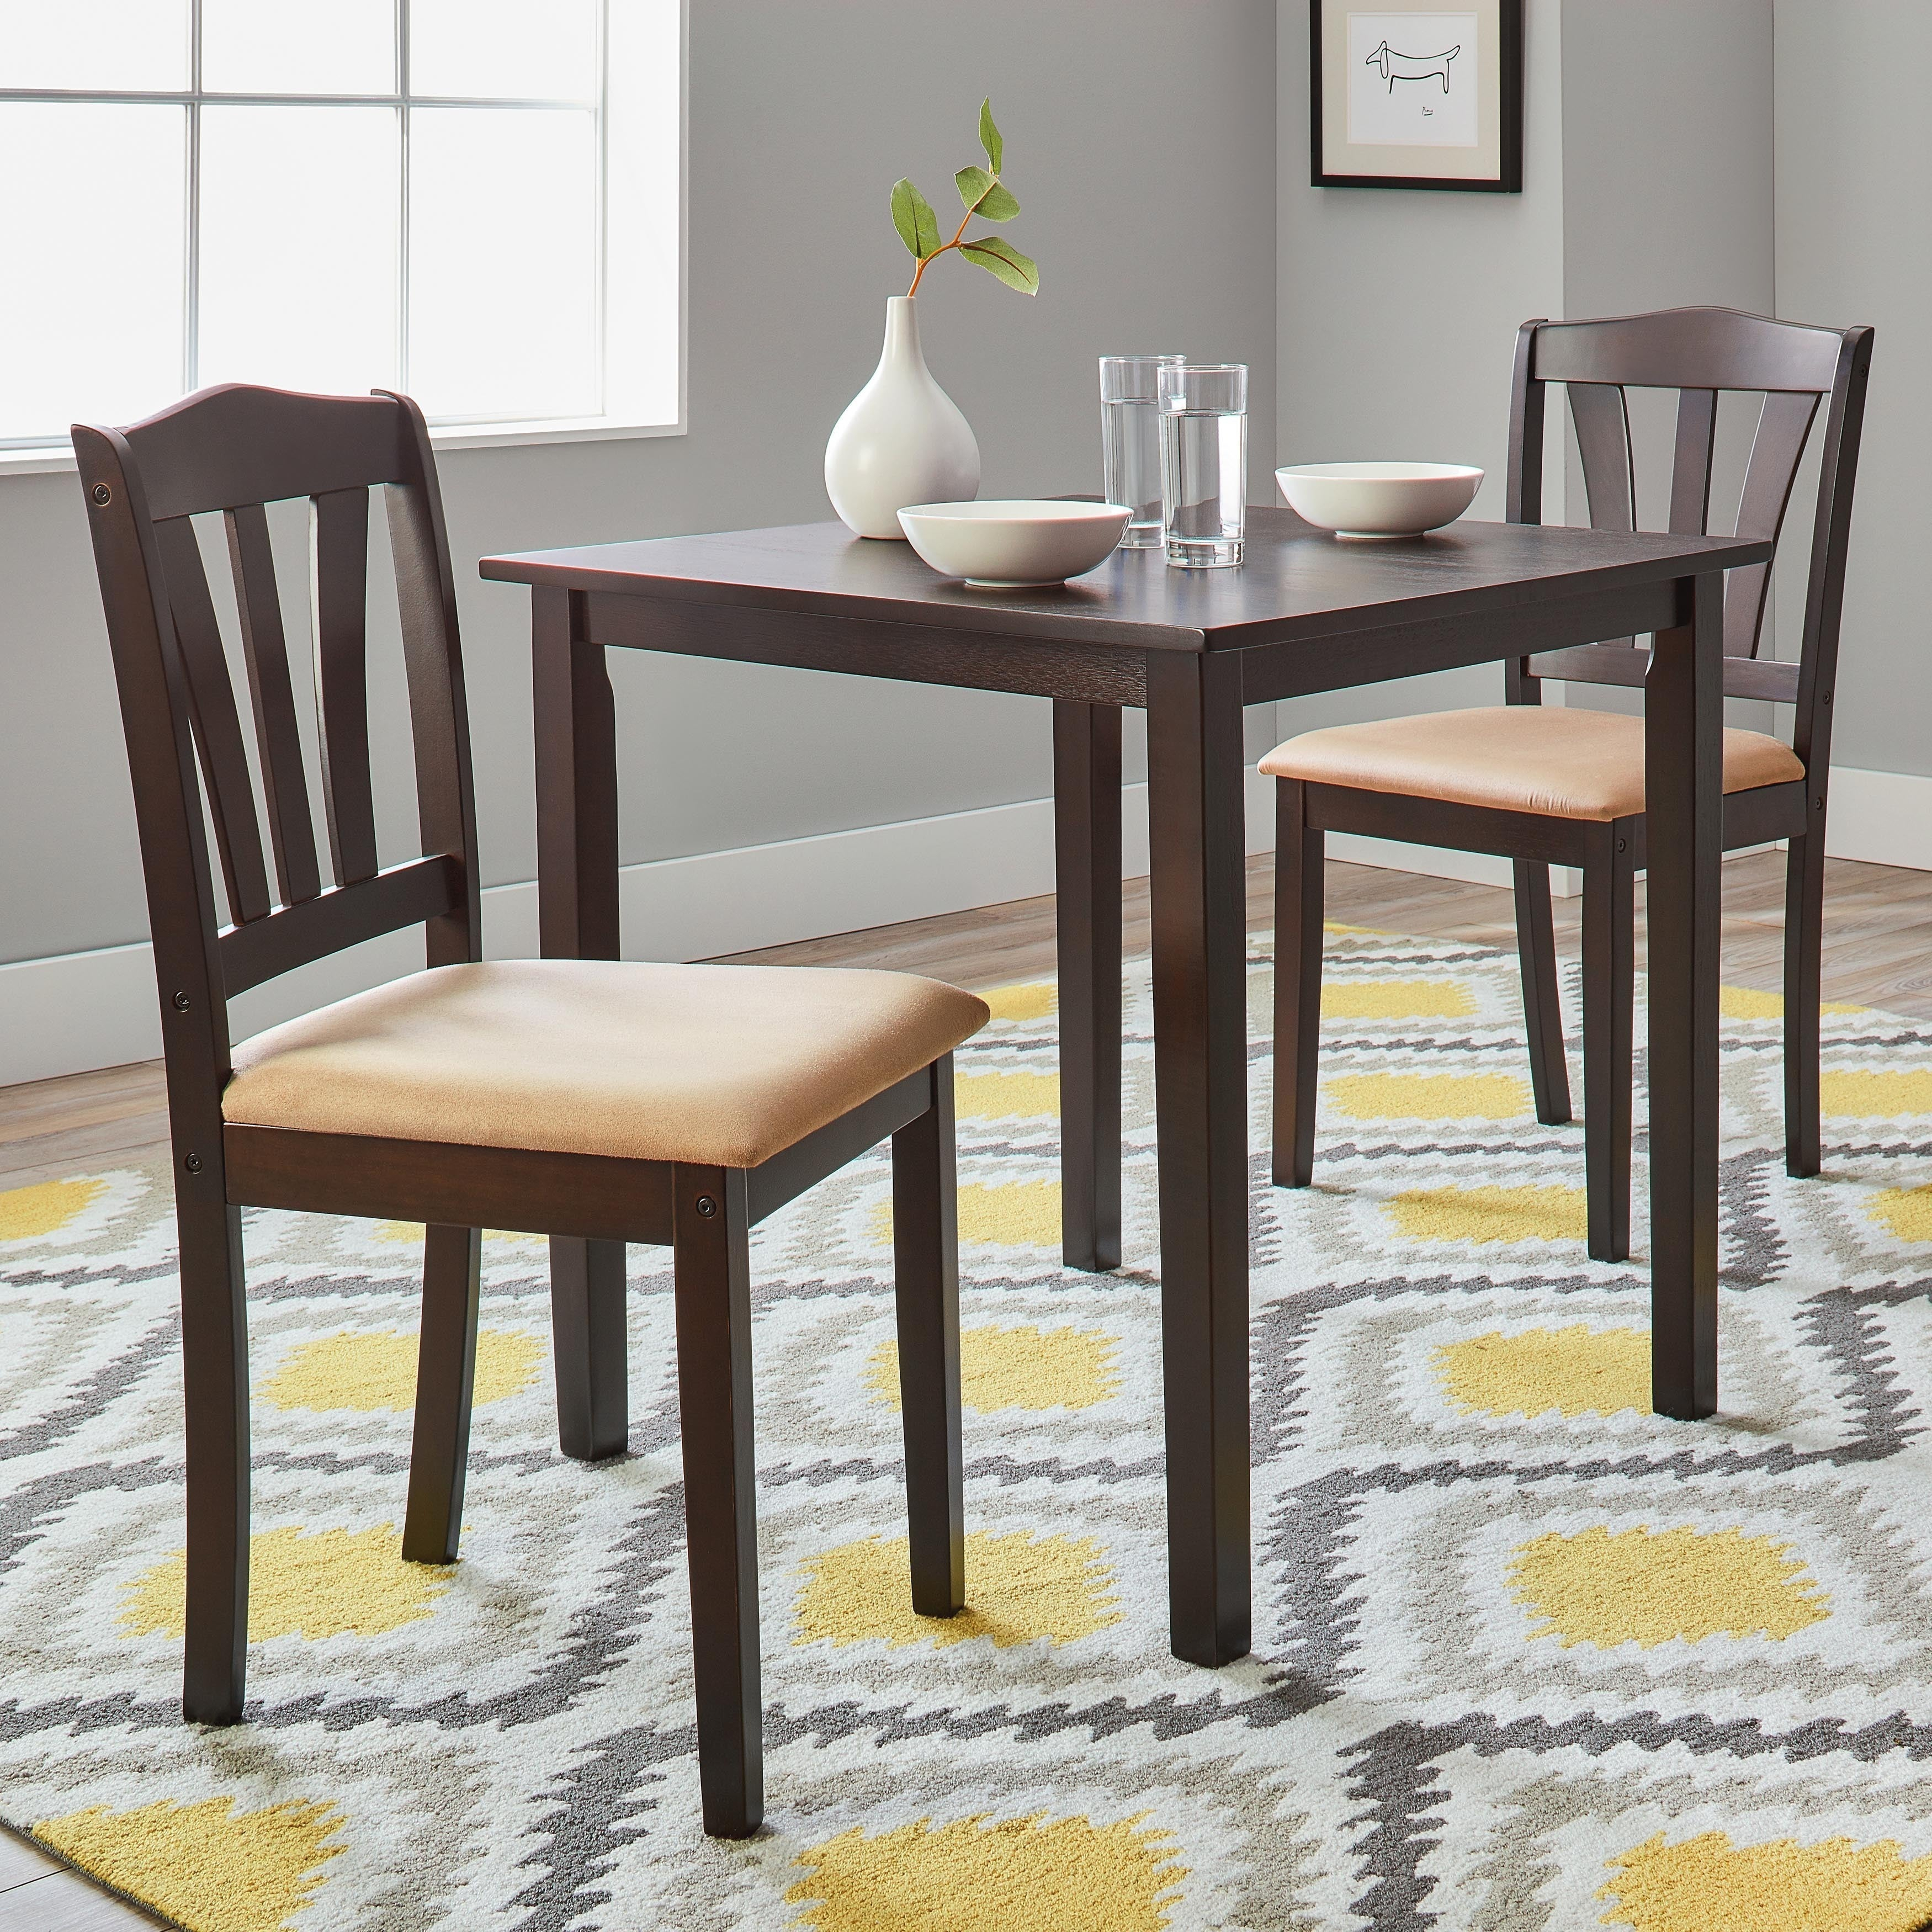 Buy 3 Piece Sets Kitchen & Dining Room Sets Online At Overstock Regarding Most Up To Date Bedfo 3 Piece Dining Sets (View 3 of 20)